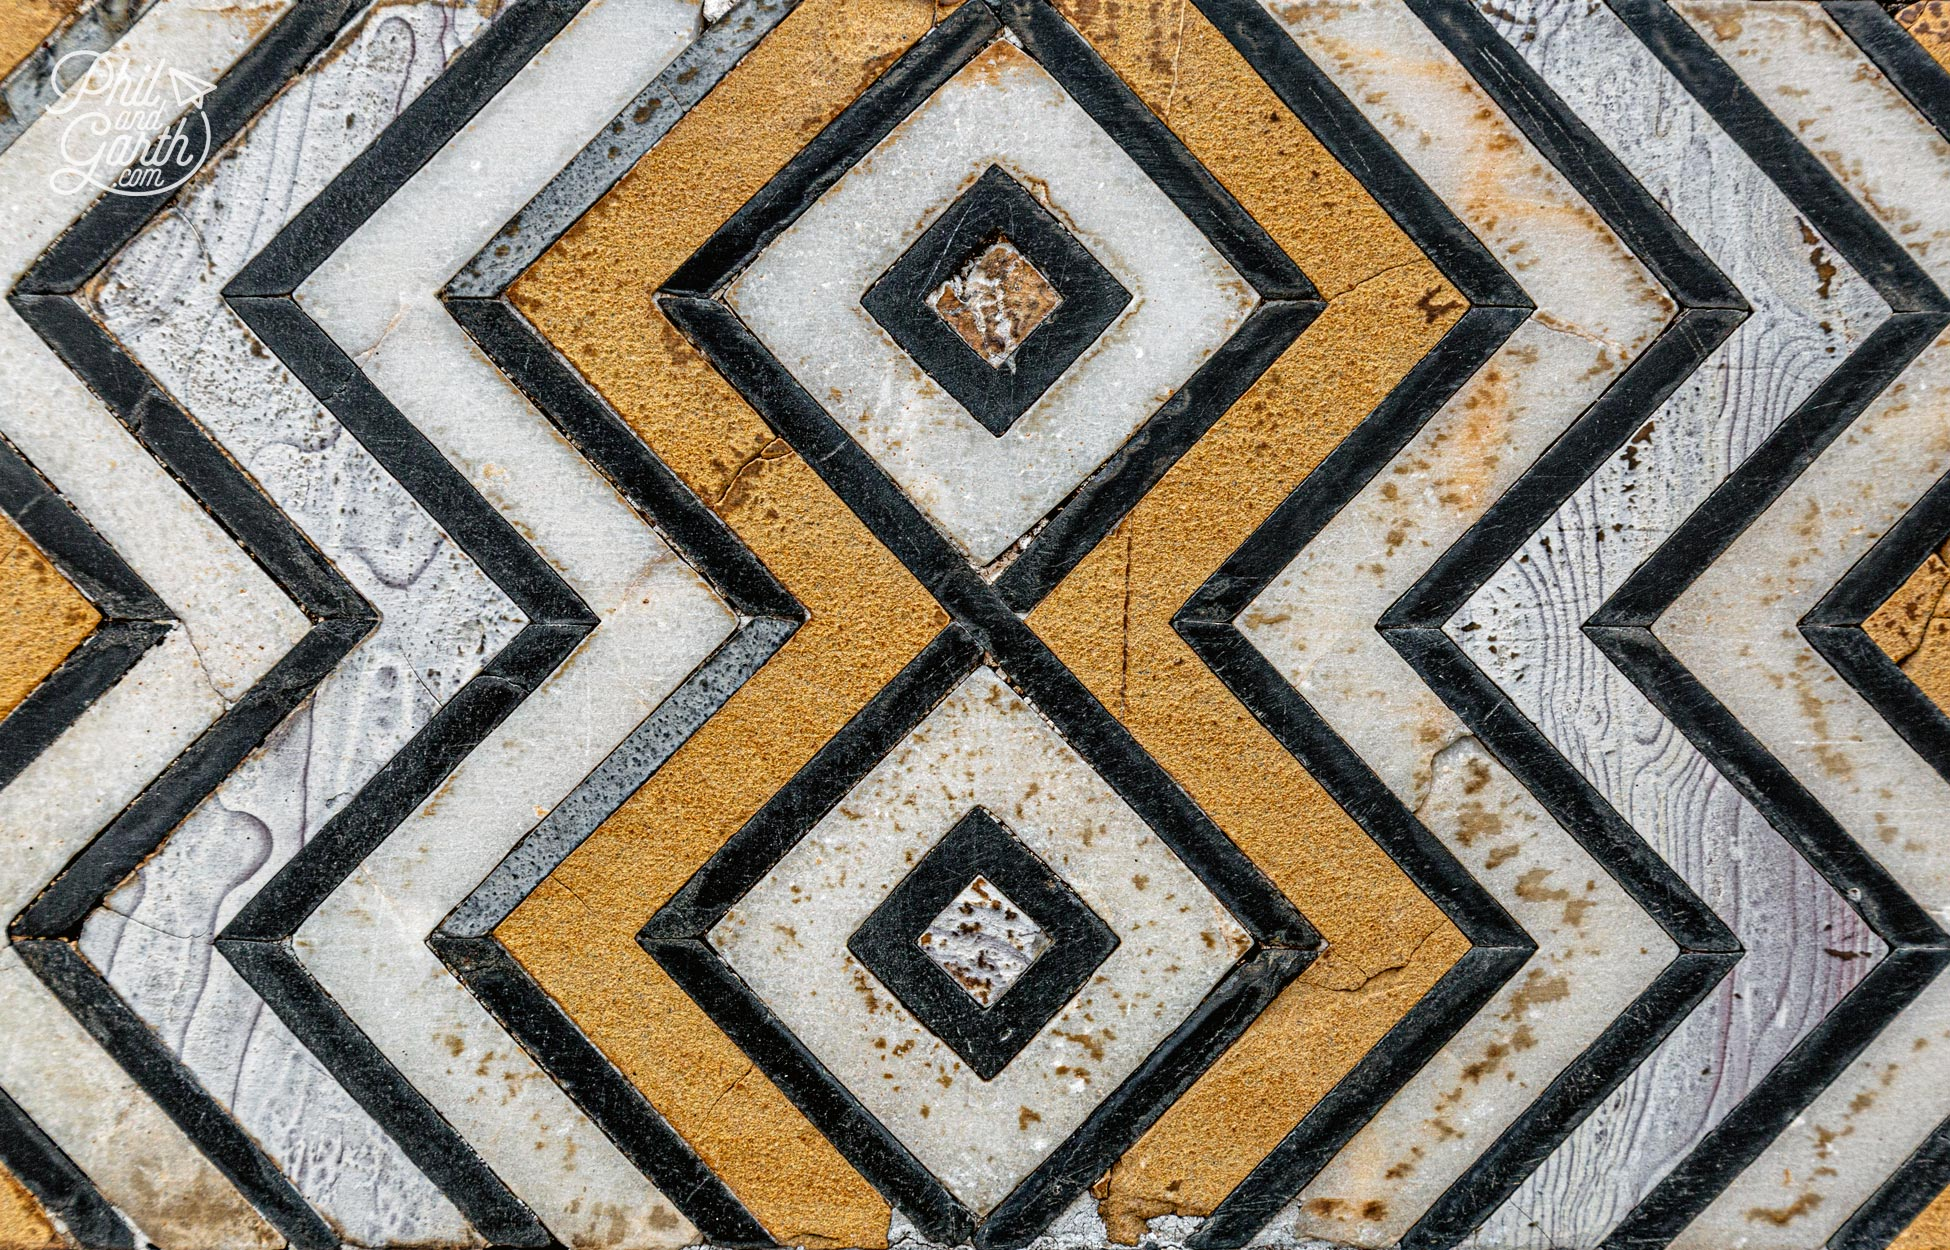 Bold and contemporary looking pattens made of precious stone